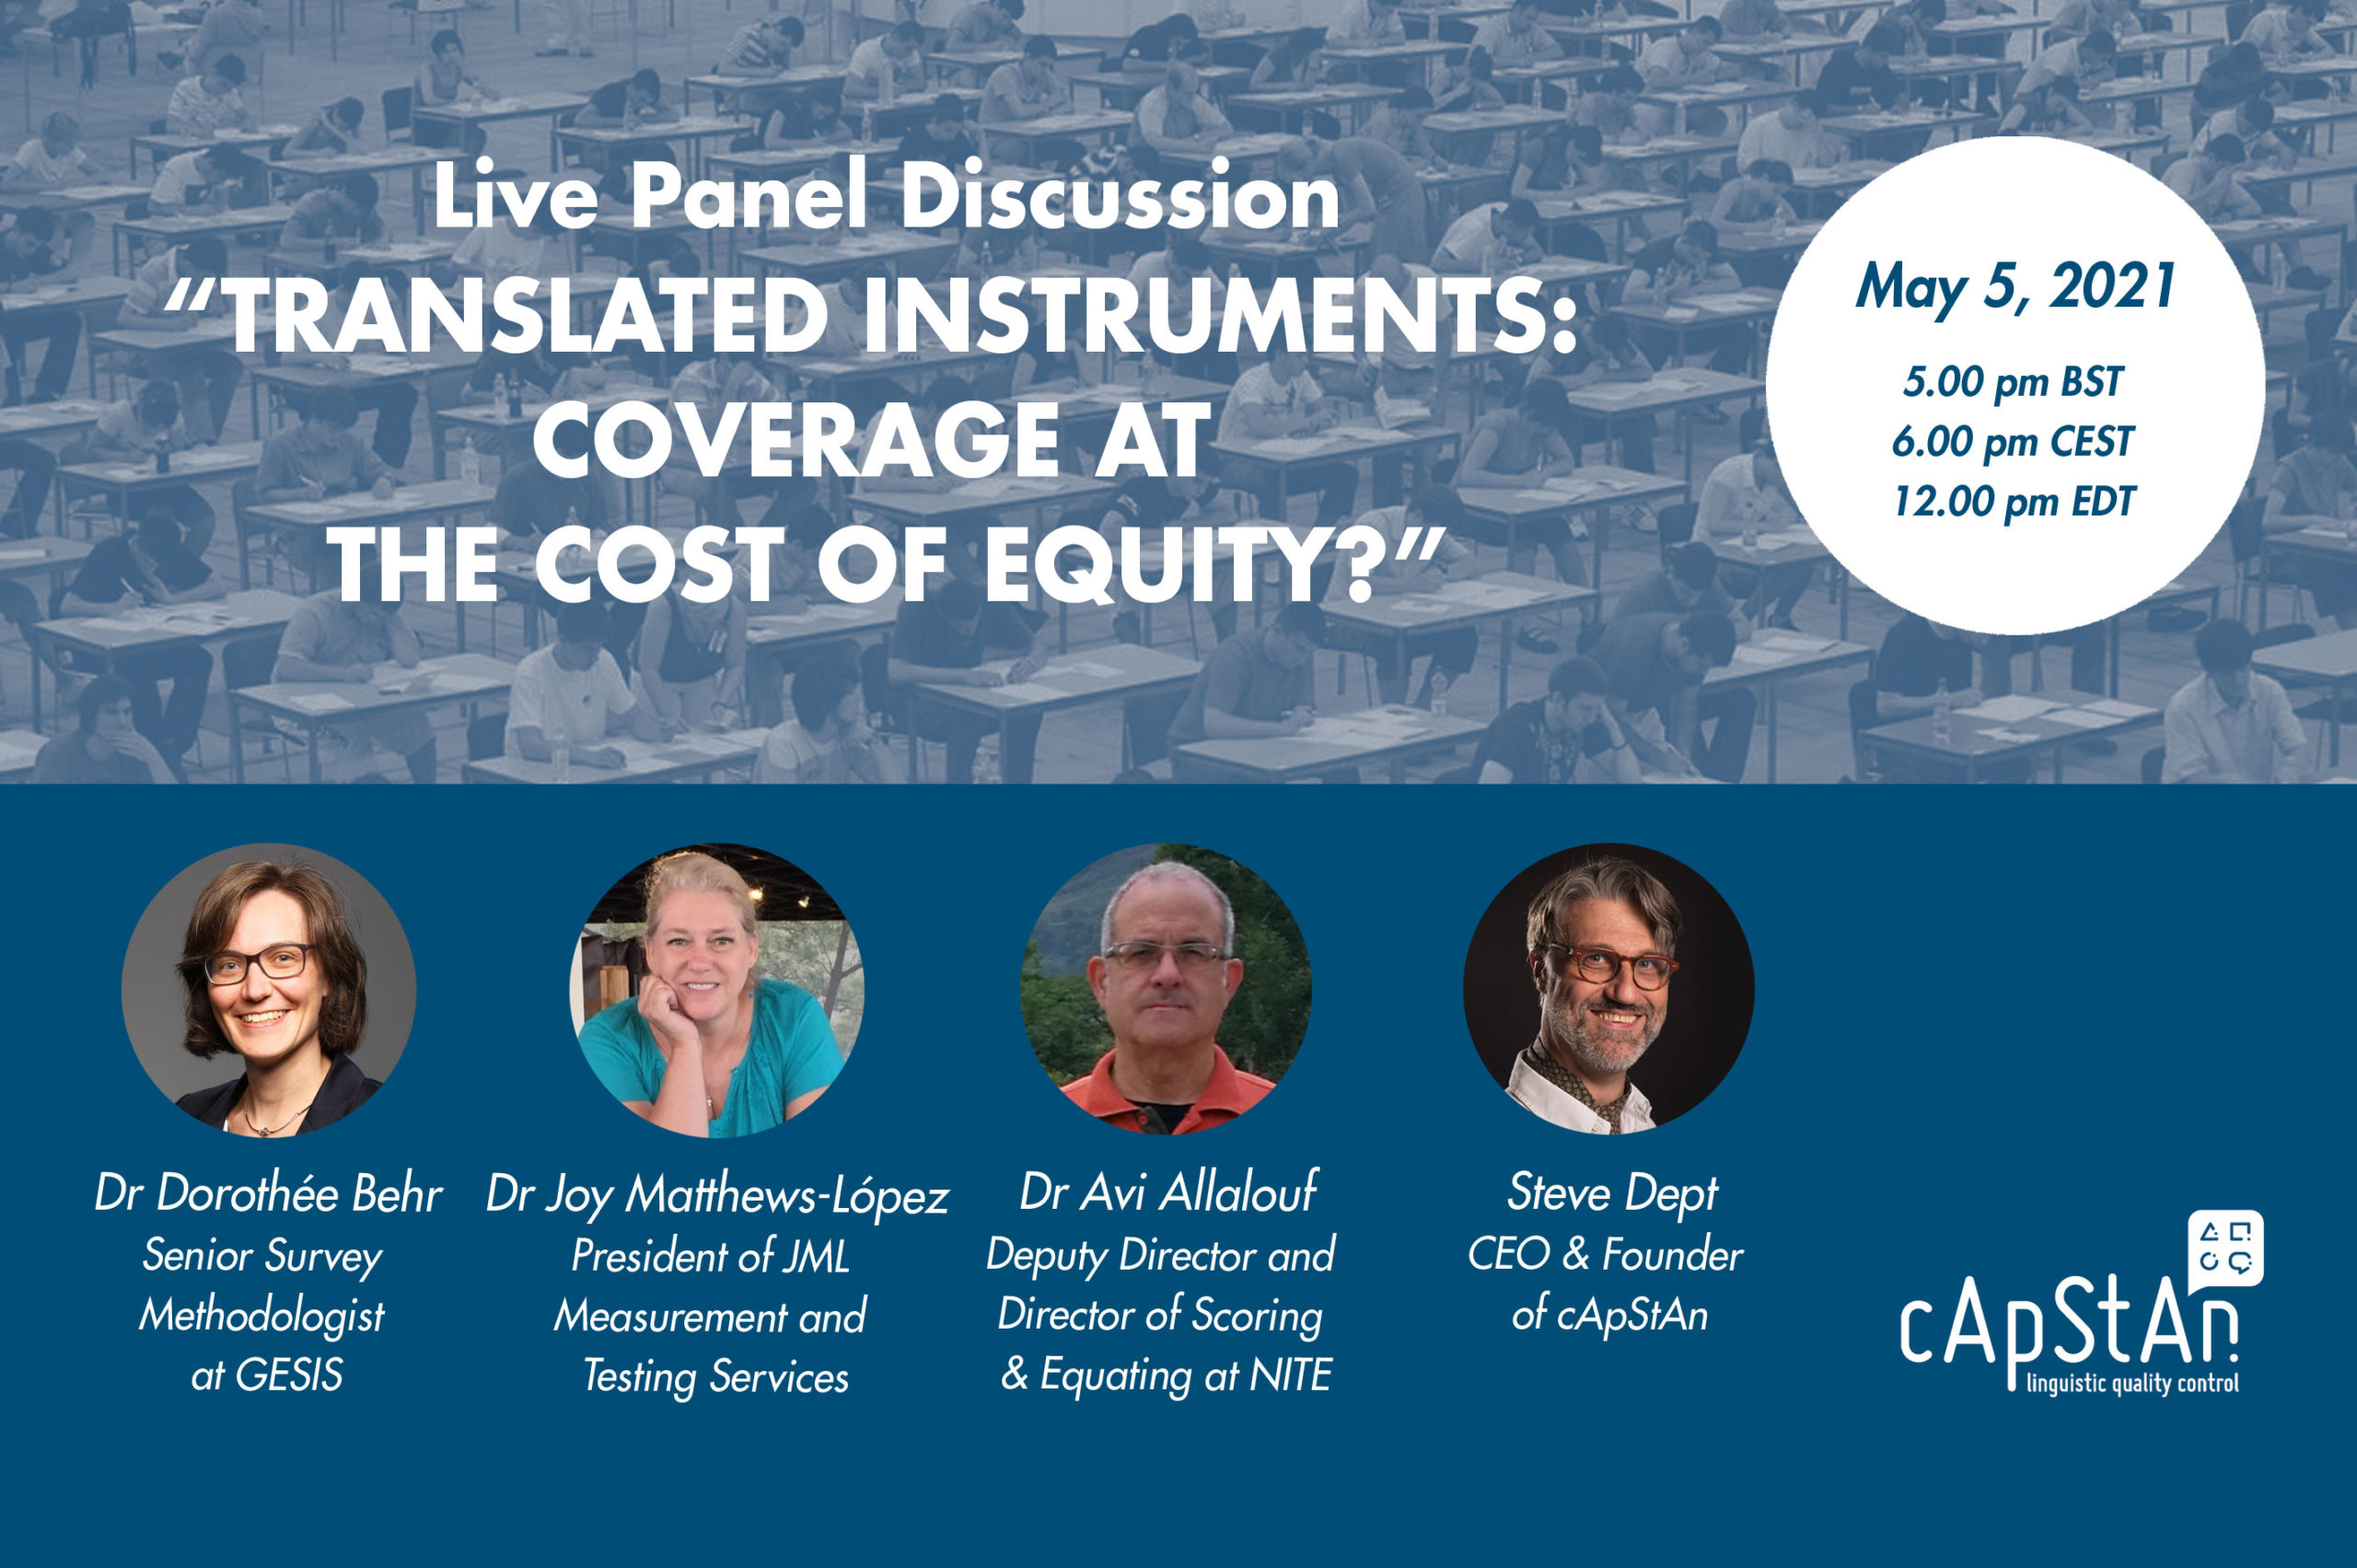 Translated Instruments: Coverage at the cost of Equity?